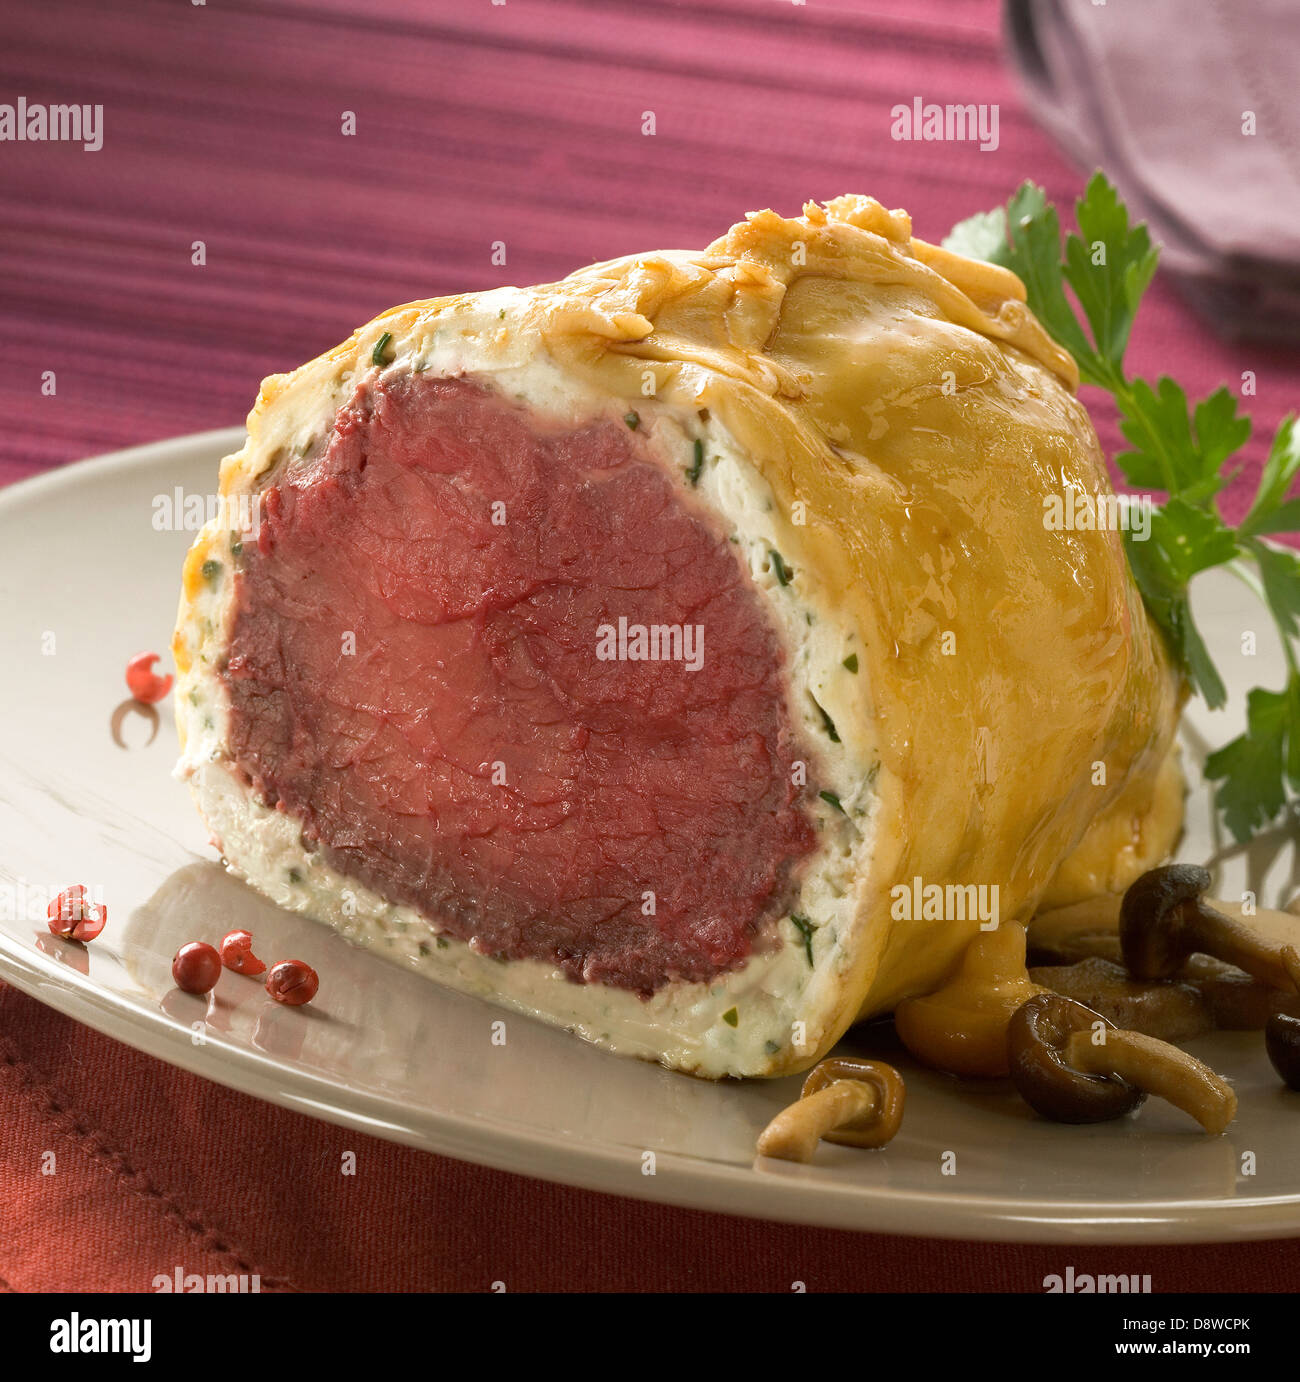 Roast beef in a Tartare chese and pastry crust - Stock Image